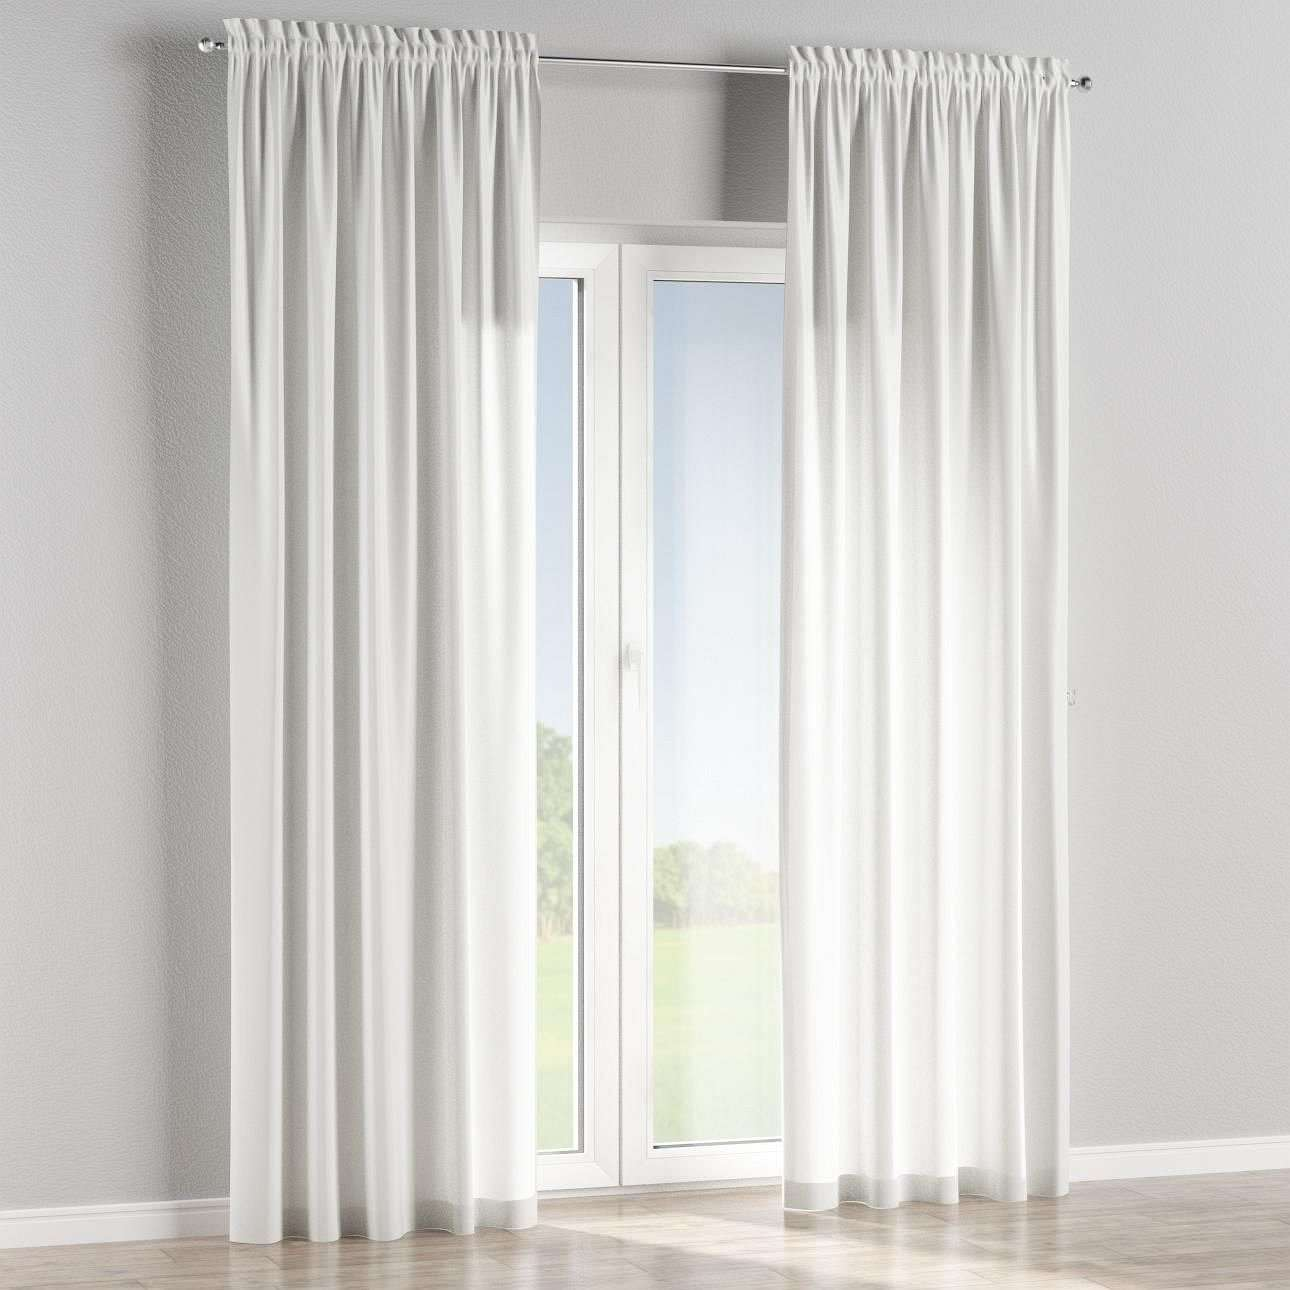 Slot and frill curtains in collection Norge, fabric: 140-93